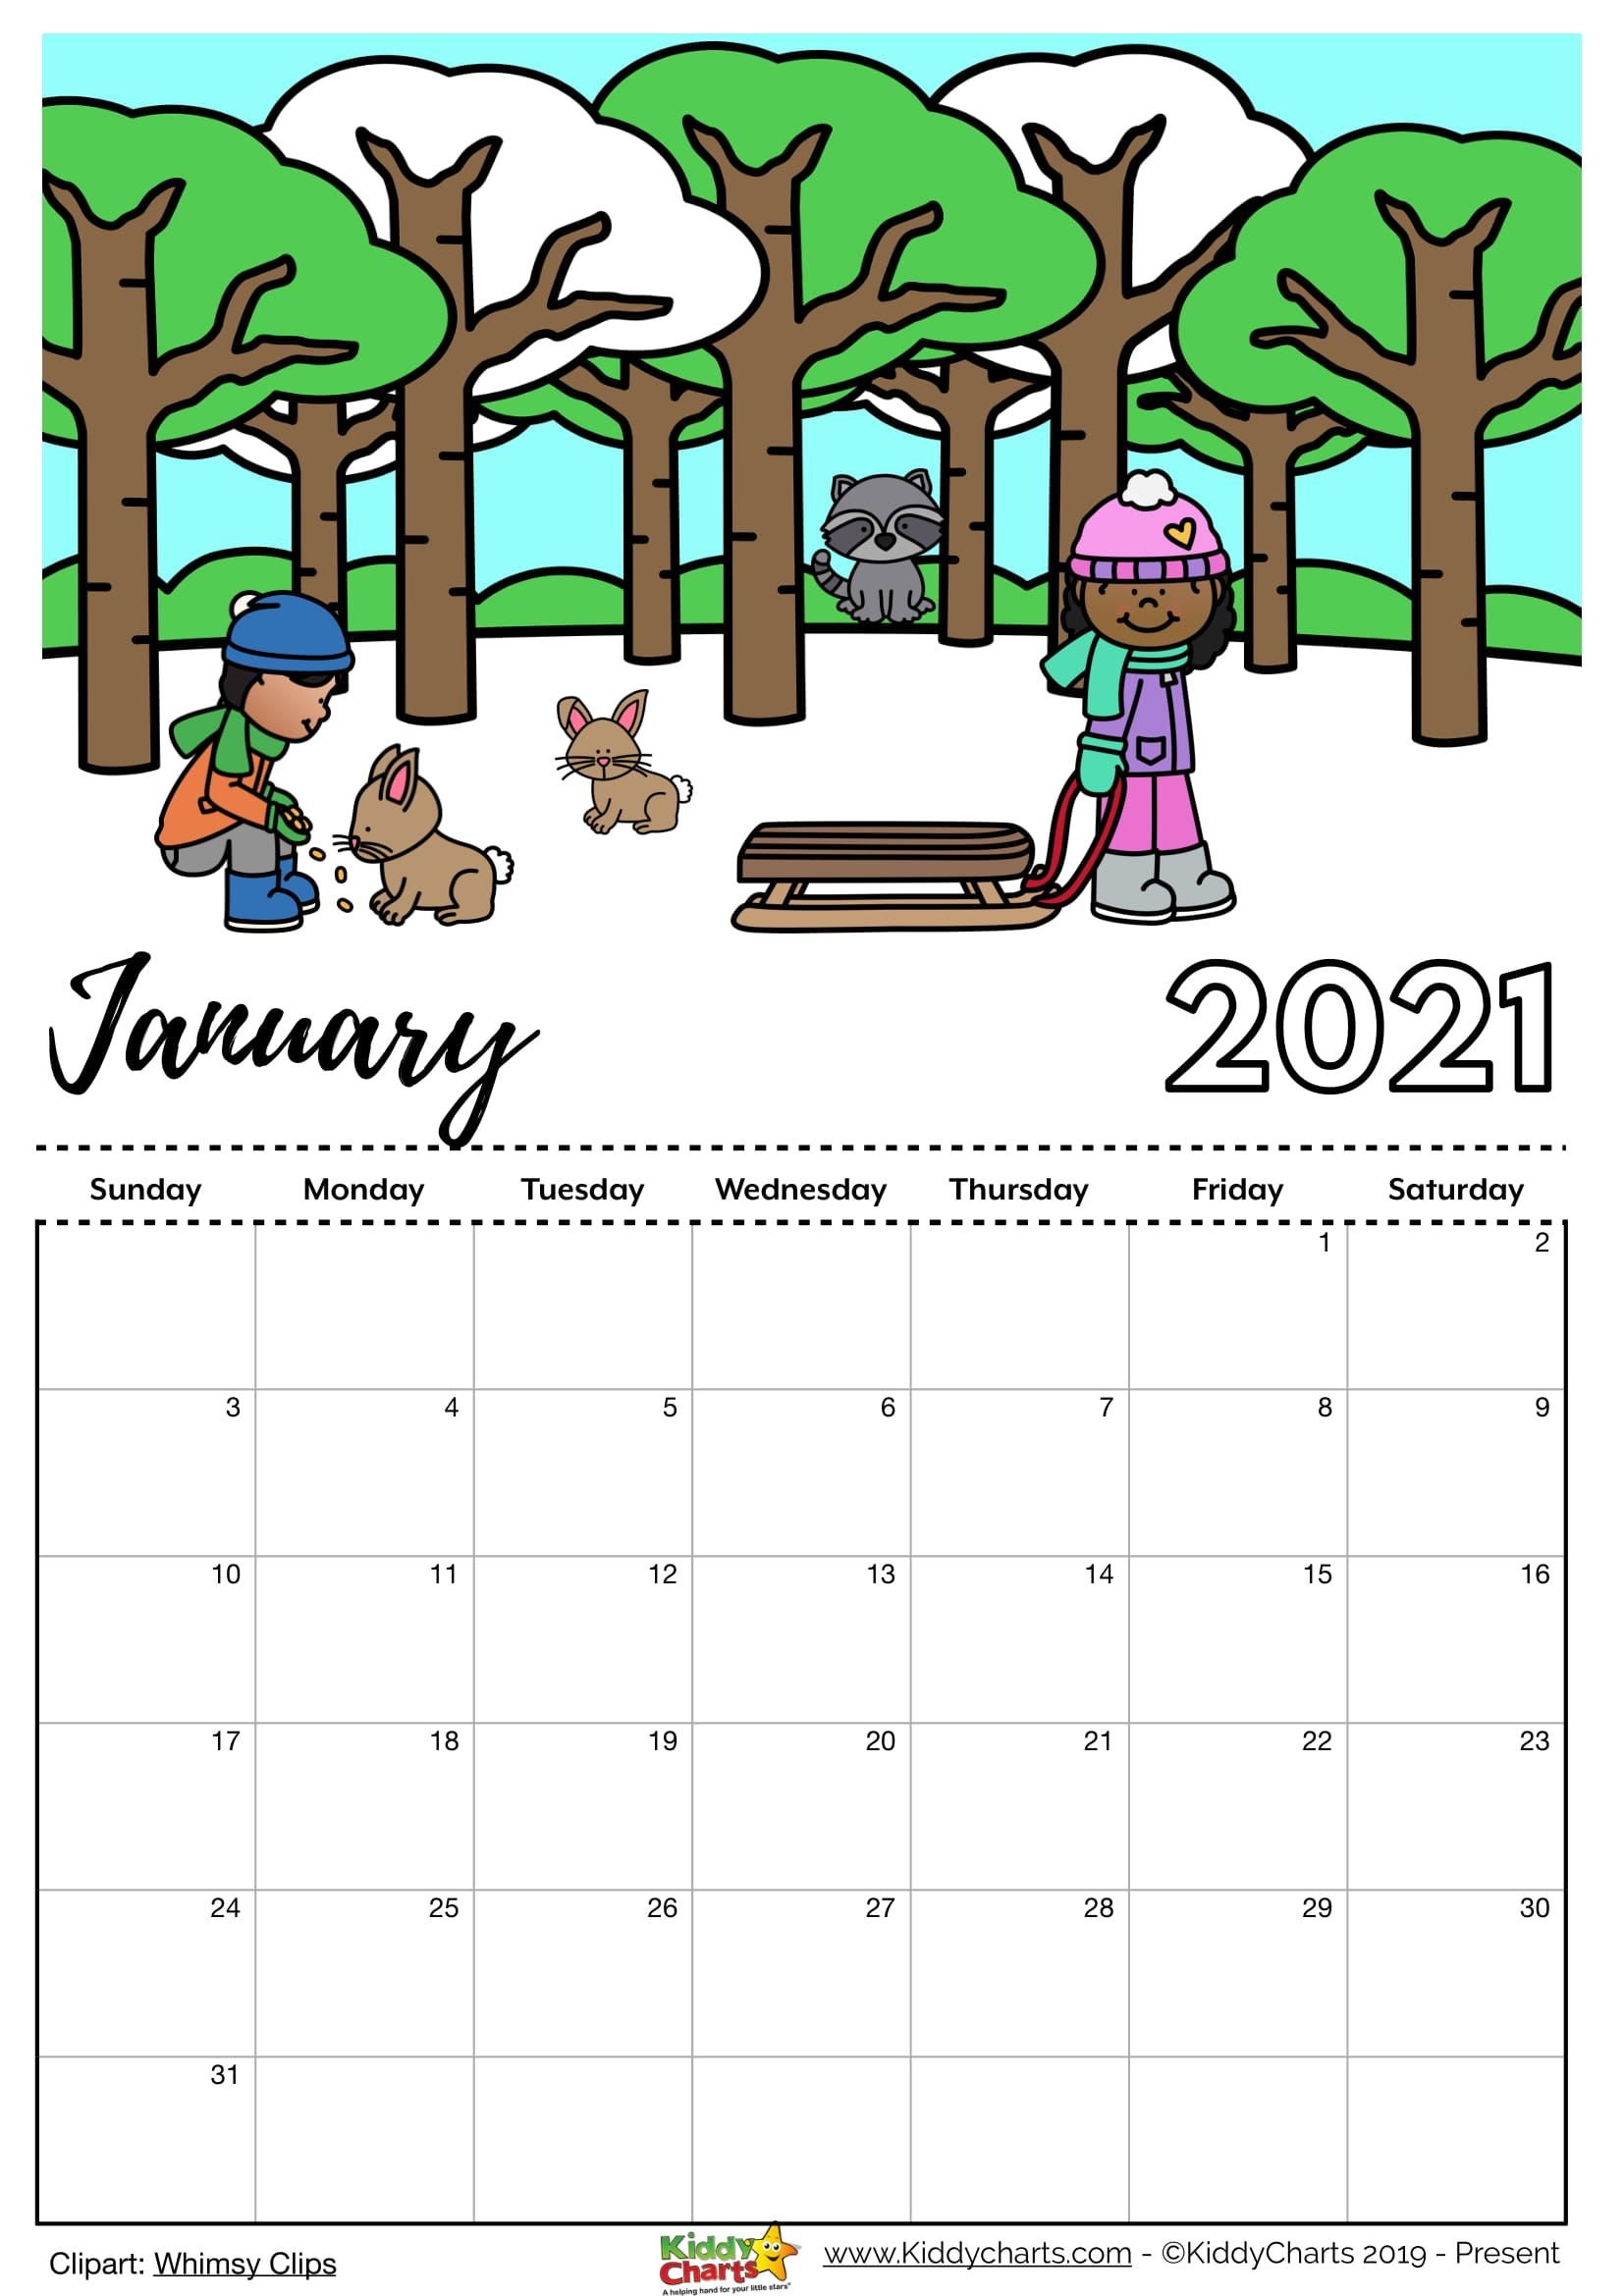 Check our new free printable 2021 calendar! | Printable calendar